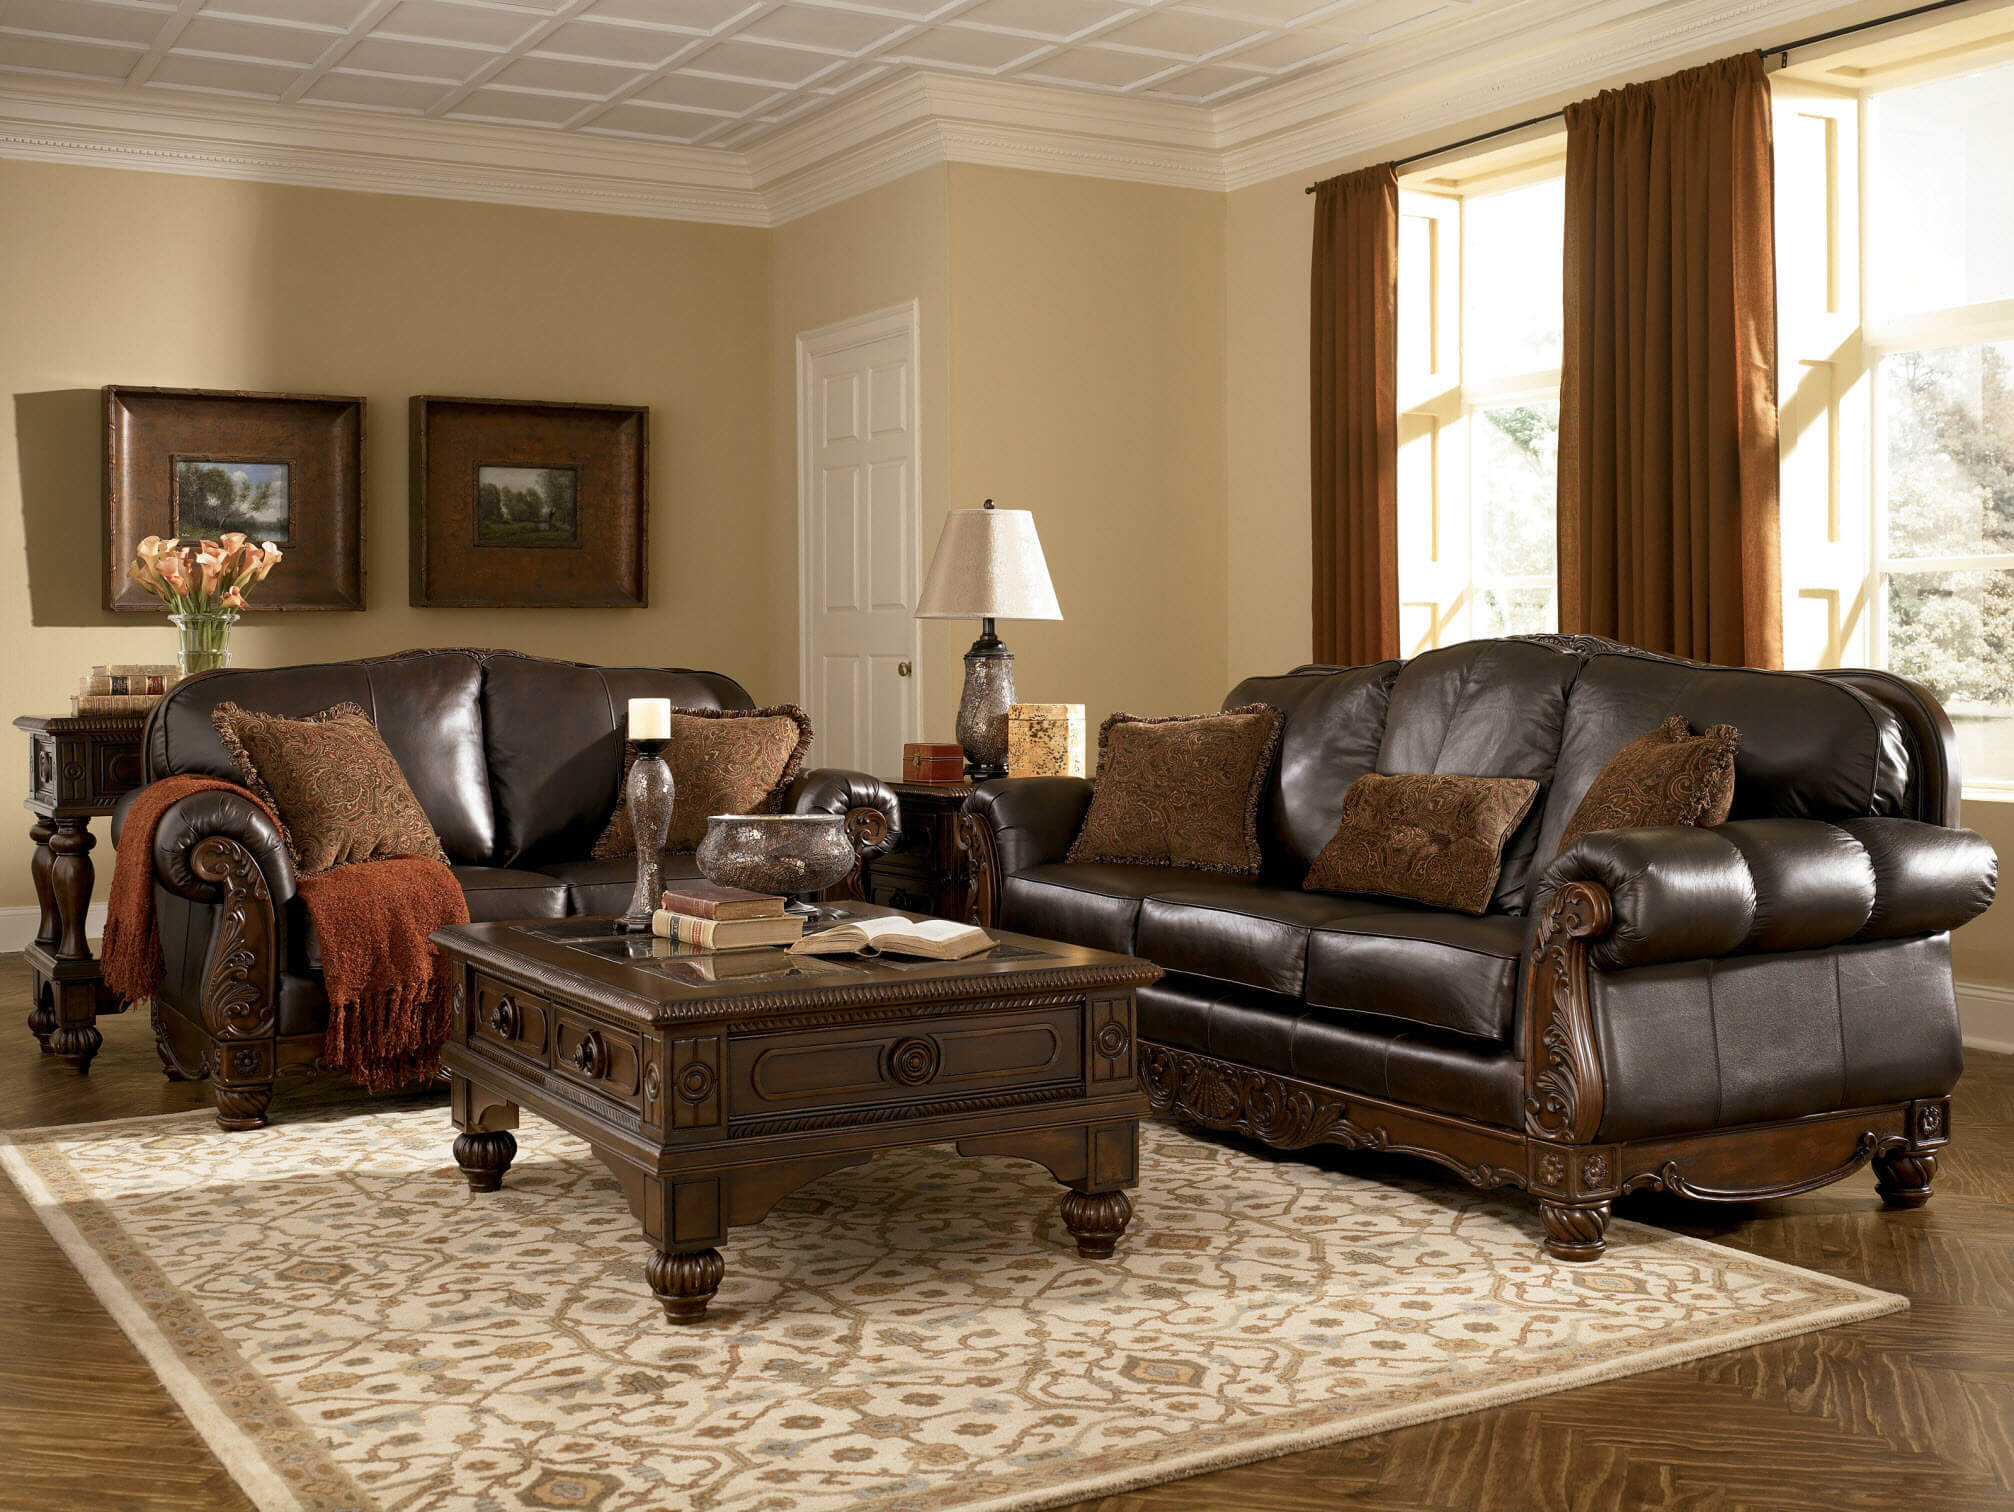 set pinterest brown enchanting and room images with on leather living dark coach about couches ideas